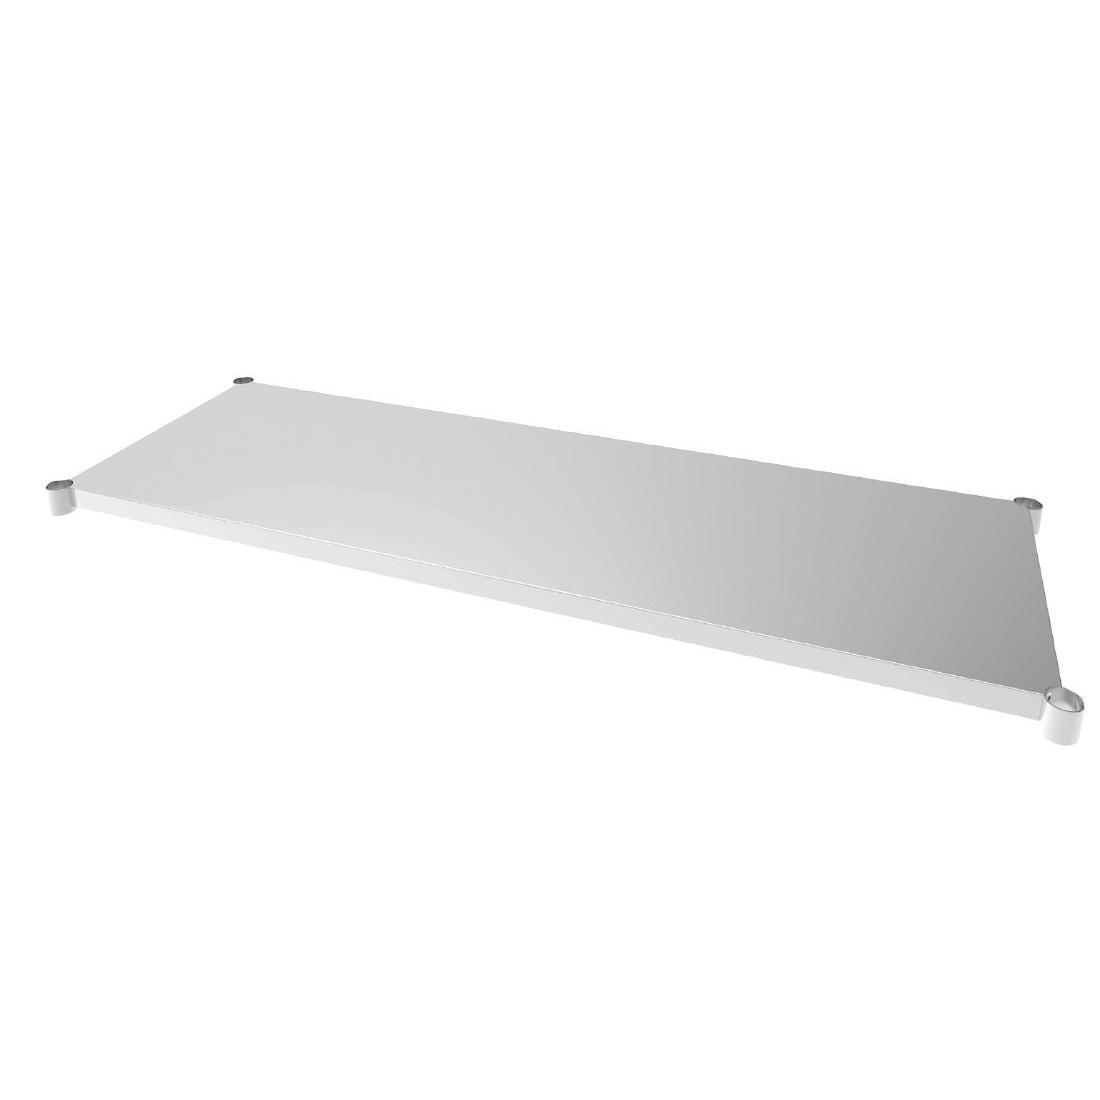 Vogue Stainless Steel Table Shelf 700x1800mm - Each - CP839